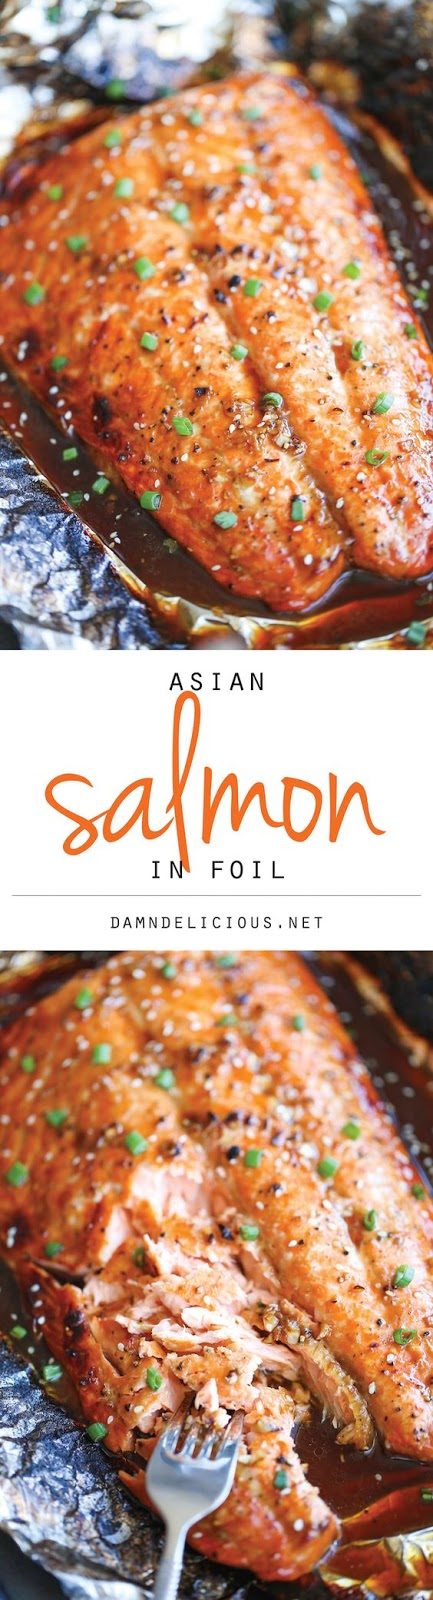 ★★★★☆ 2261 ratings | ASIAN SALMON IN FOIL  #HEALTHYFOOD #EASYRECIPES #DINNER #LAUCH #DELICIOUS #EASY #HOLIDAYS #RECIPE #DESSERTS #SPECIALDIET #WORLDCUISINE #CAKE #APPETIZERS #HEALTHYRECIPES #DRINKS #COOKINGMETHOD #ITALIANRECIPES #MEAT #VEGANRECIPES #COOKIES #PASTA #FRUIT #SALAD #SOUPAPPETIZERS #NONALCOHOLICDRINKS #MEALPLANNING #VEGETABLES #SOUP #PASTRY #CHOCOLATE #DAIRY #ALCOHOLICDRINKS #BULGURSALAD #BAKING #SNACKS #BEEFRECIPES #MEATAPPETIZERS #MEXICANRECIPES #BREAD #ASIANRECIPES #SEAFOODAPPETIZERS #MUFFINS #BREAKFASTANDBRUNCH #CONDIMENTS #CUPCAKES #CHEESE #CHICKENRECIPES #PIE #COFFEE #NOBAKEDESSERTS #HEALTHYSNACKS #SEAFOOD #GRAIN #LUNCHESDINNERS #MEXICAN #QUICKBREAD #LIQUOR